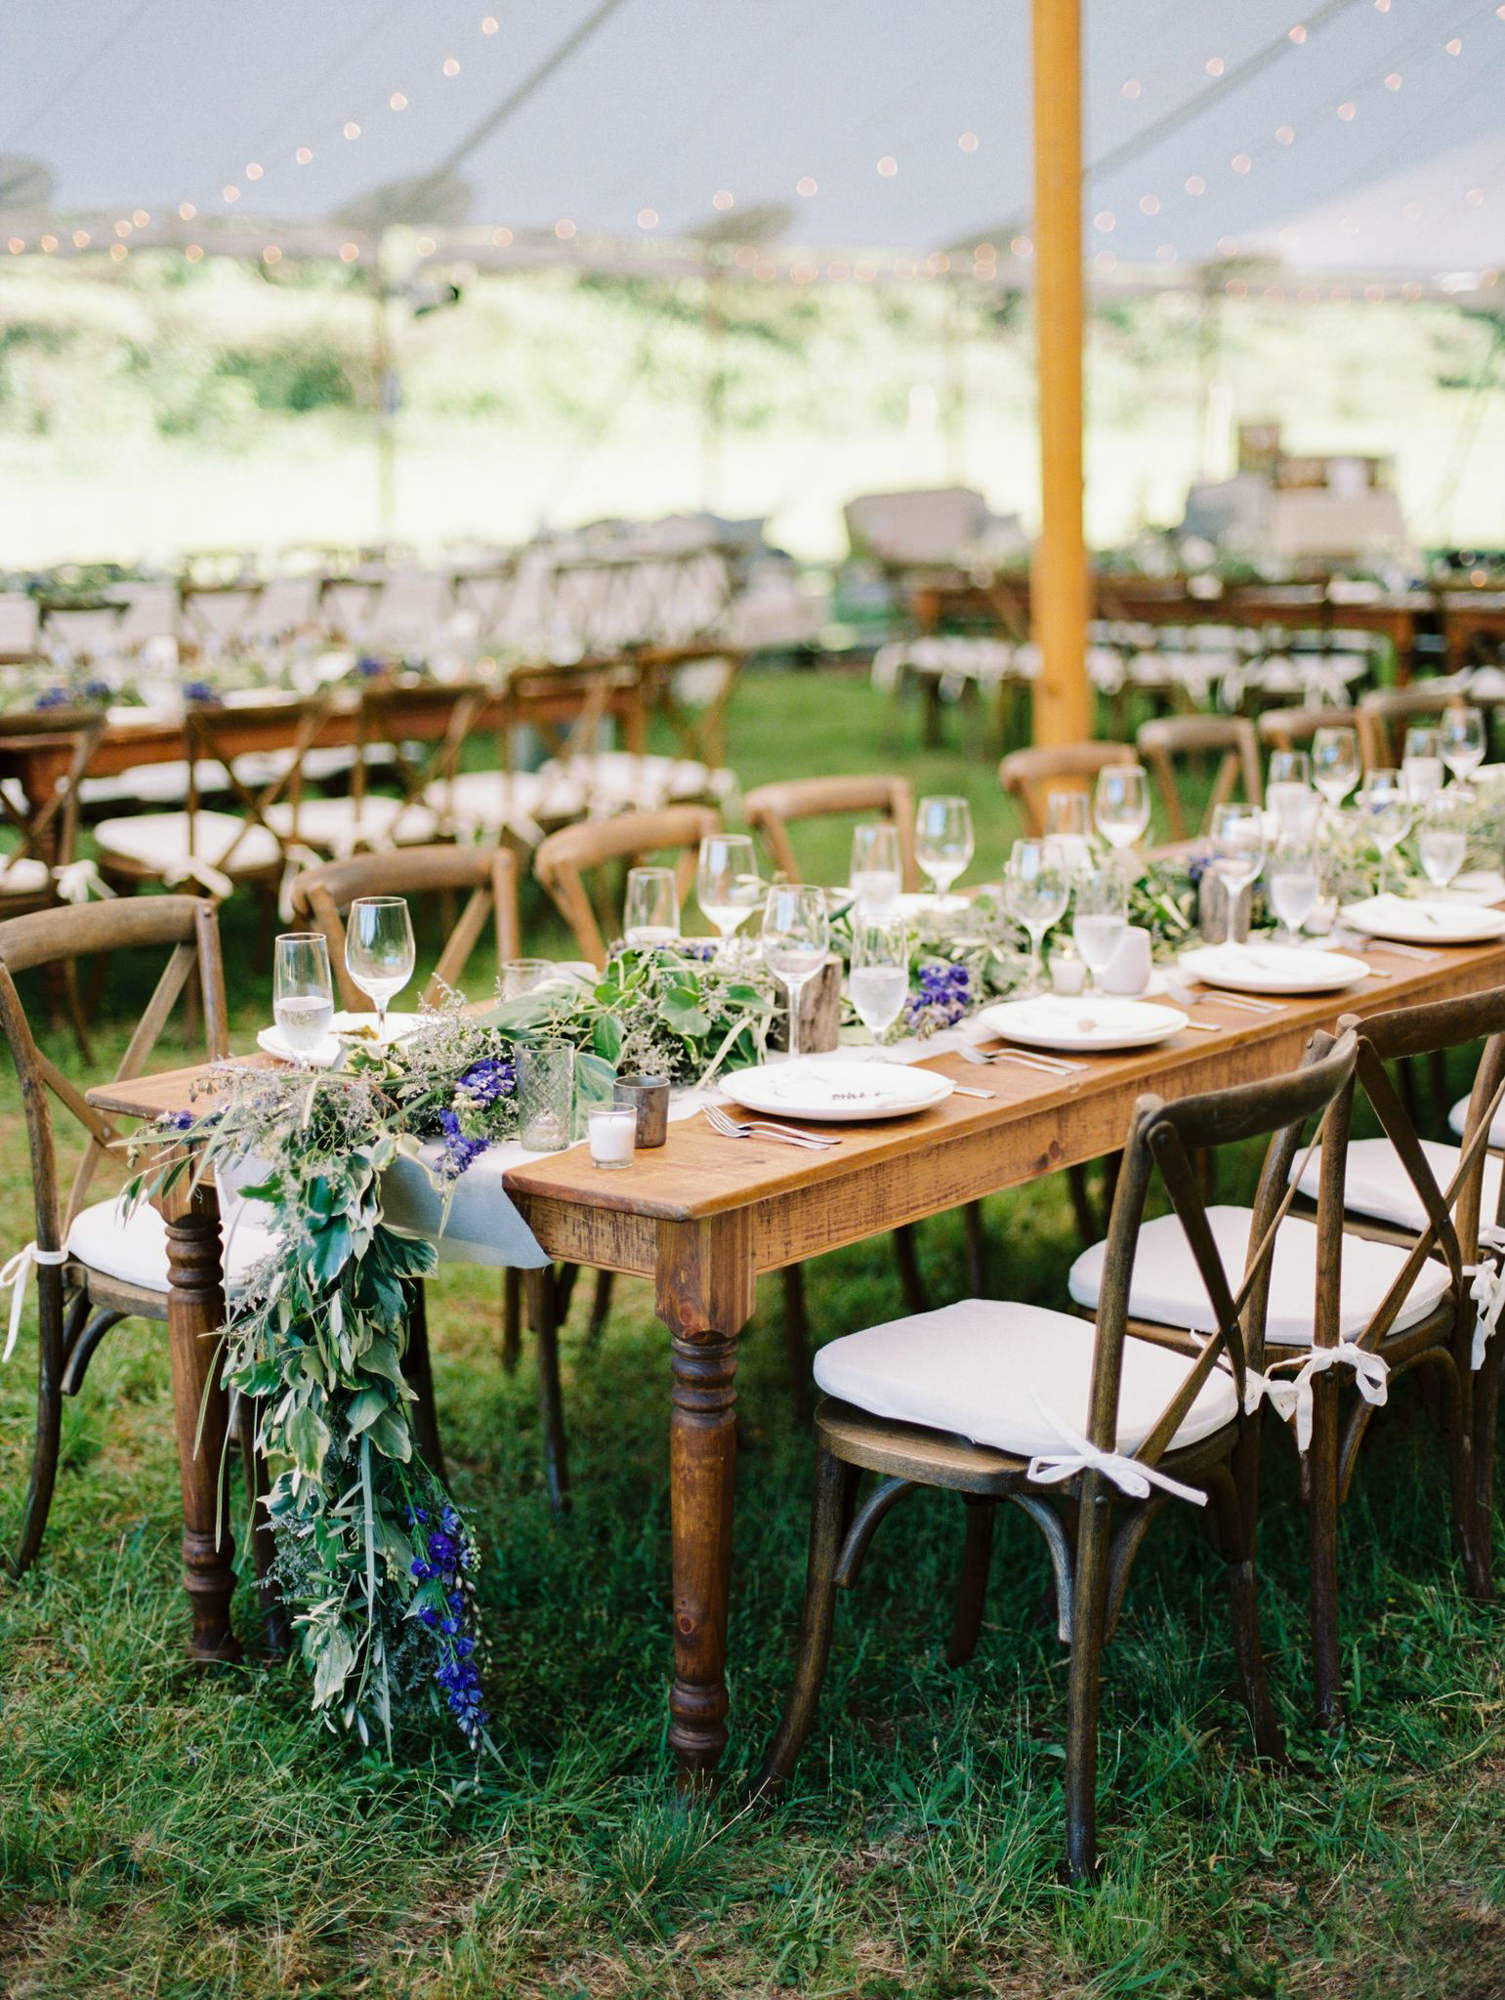 Rustic elegance reception table - photo by Benj Haisch